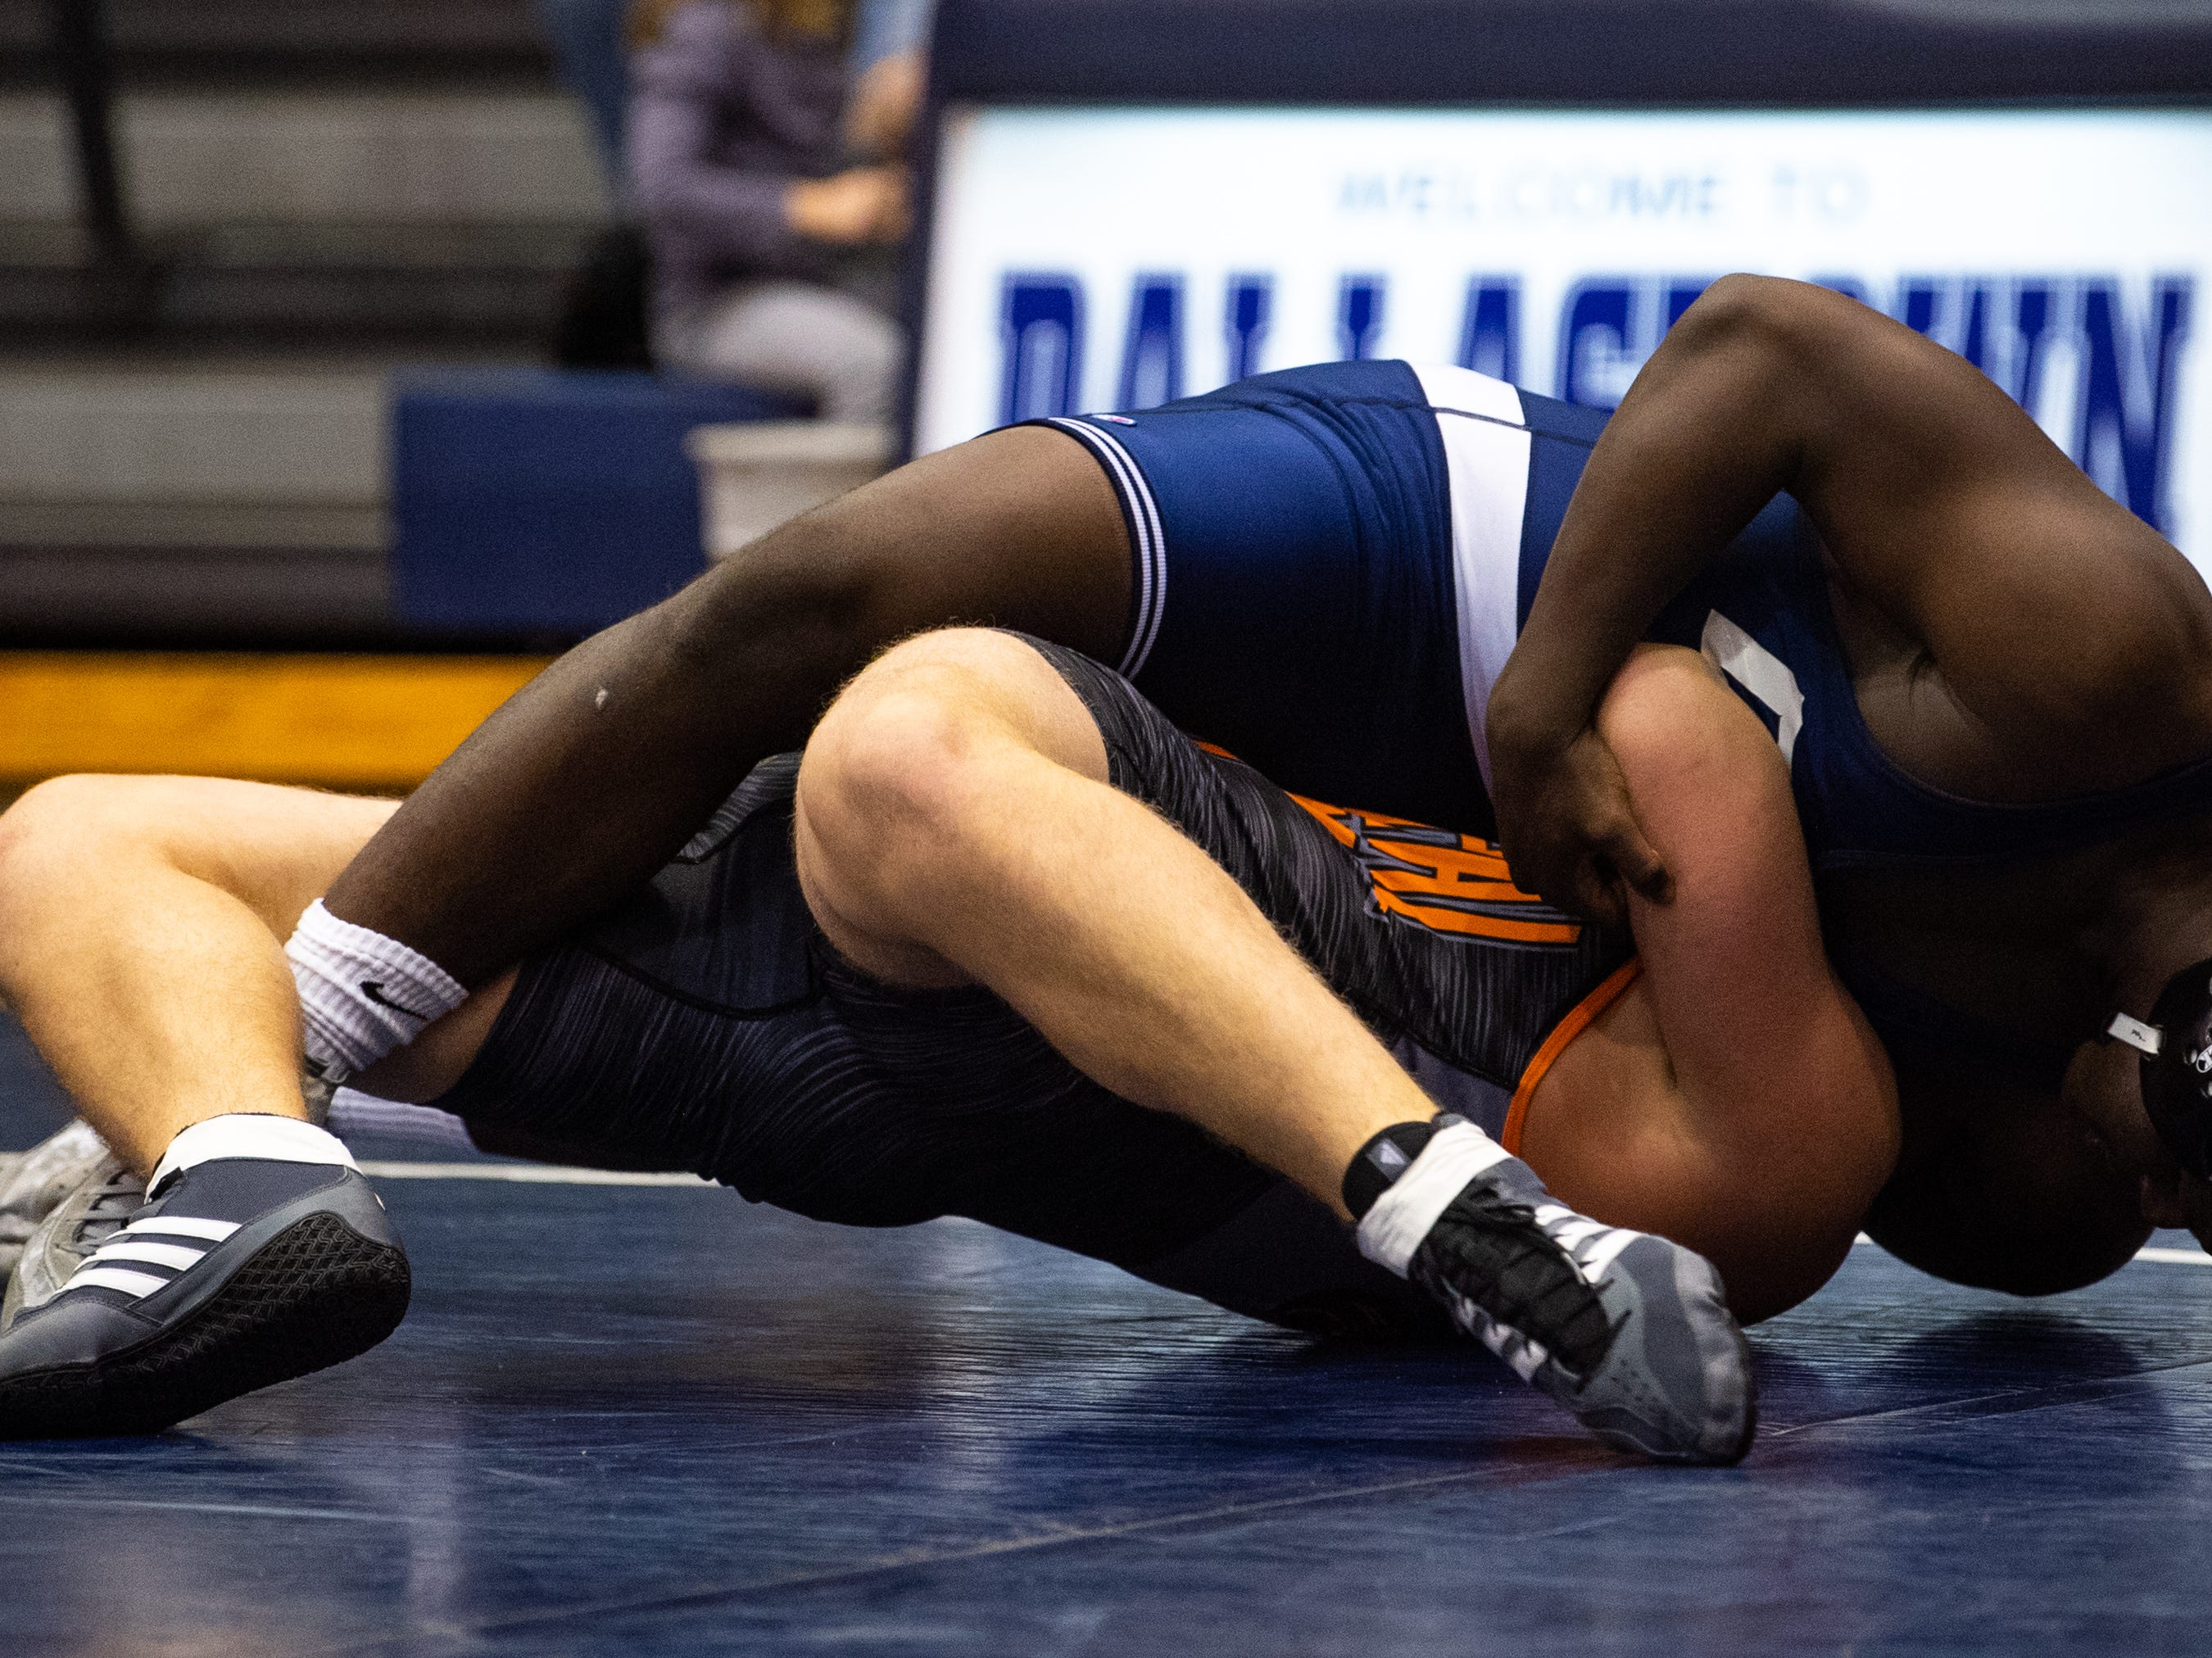 Jamal Brandon of Dallastown is in full control of Ethan Miller of Central York during the wrestling dual meet between Dallastown and Central York at Dallastown Area High School, Thursday, January 3, 2019. The Wildcats defeated the Panthers 62-18.